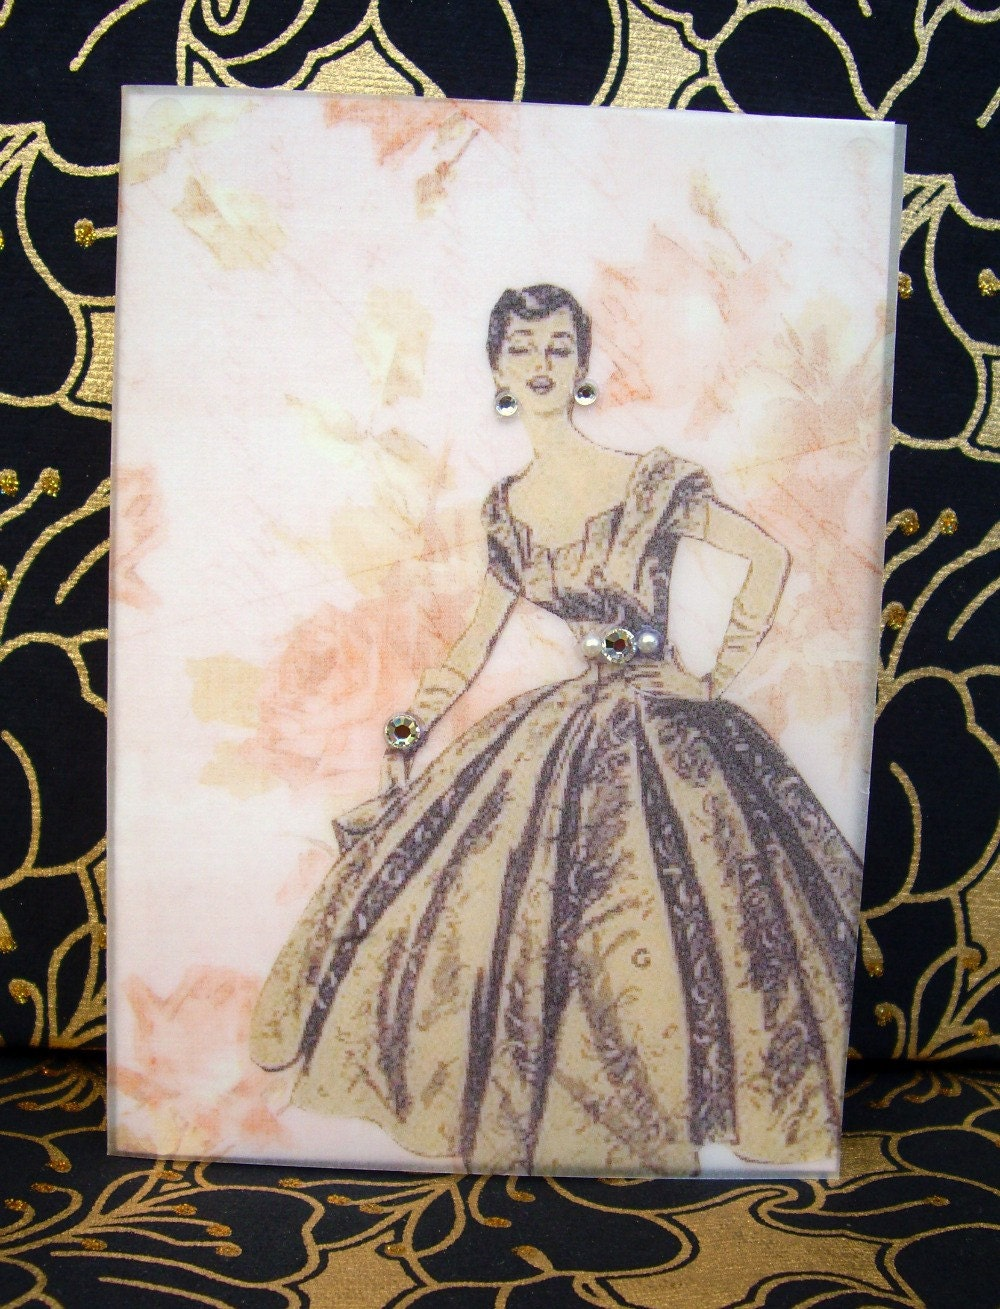 Jacqueline Card / Vintage Printed Collection / 50s Glamour Girl / Handmade Greeting Card